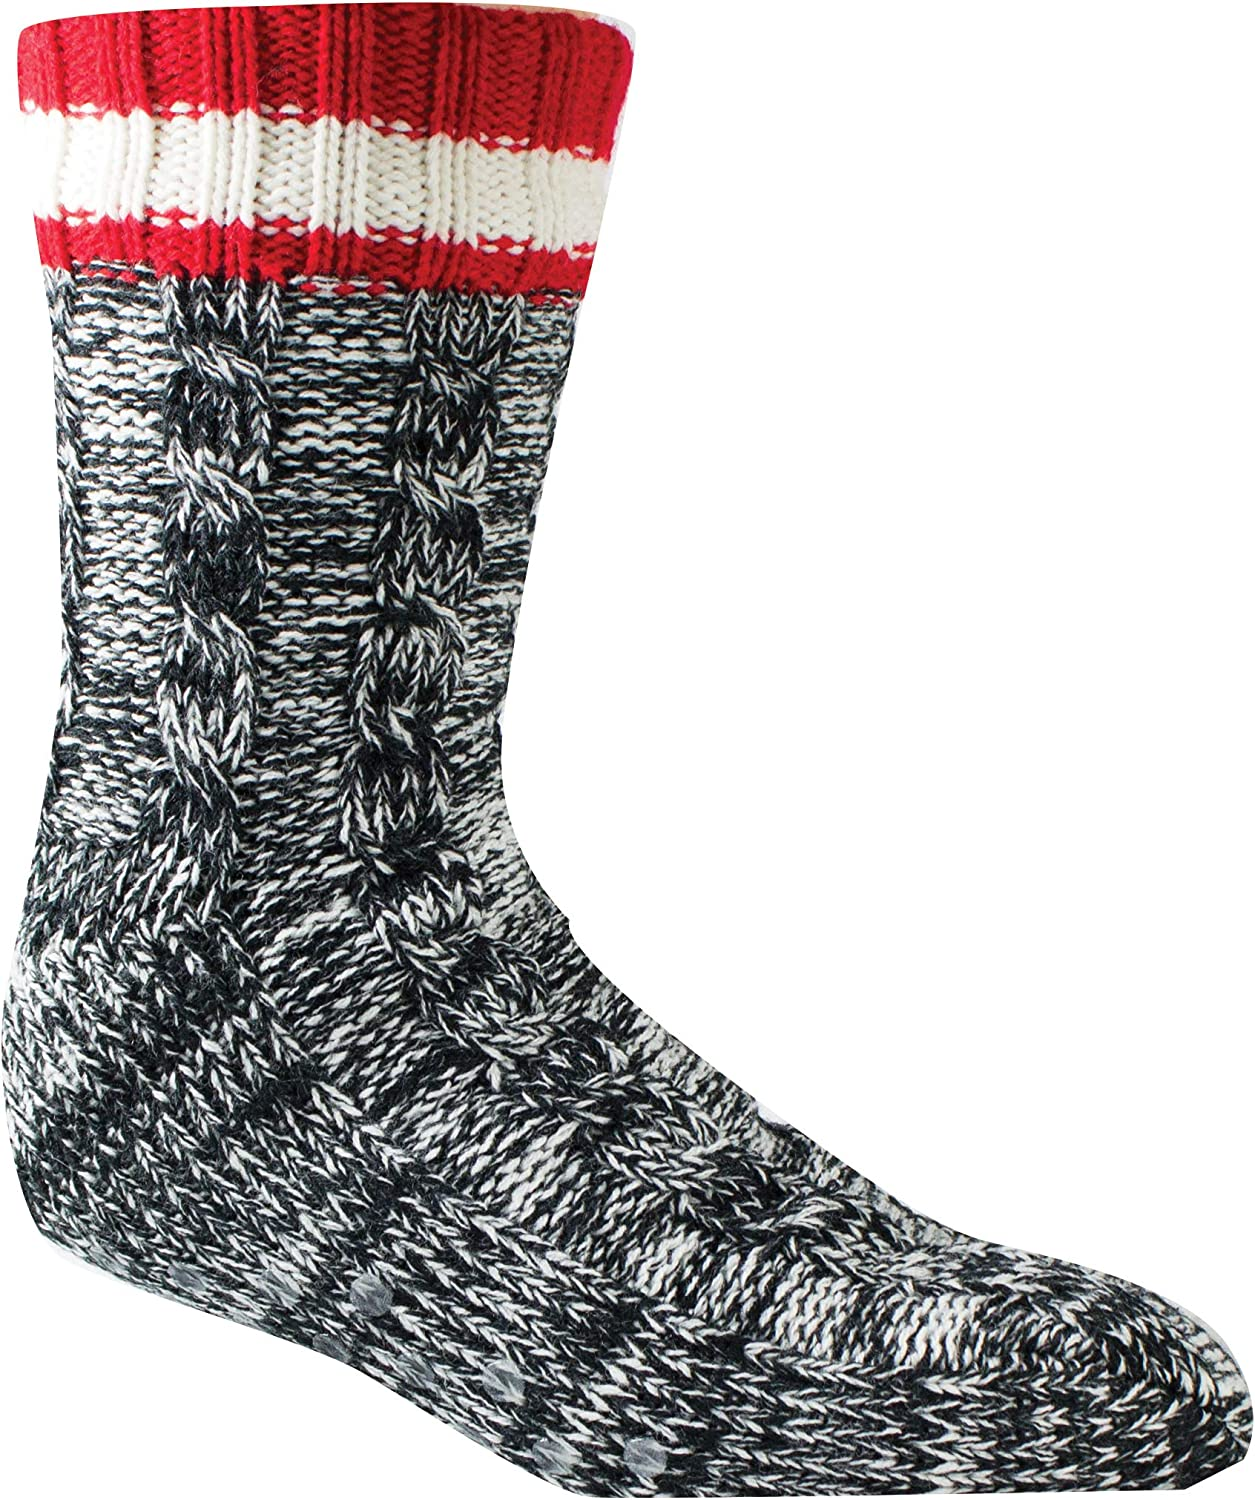 Woolrich, Men's Slipper Sock, Black, Large